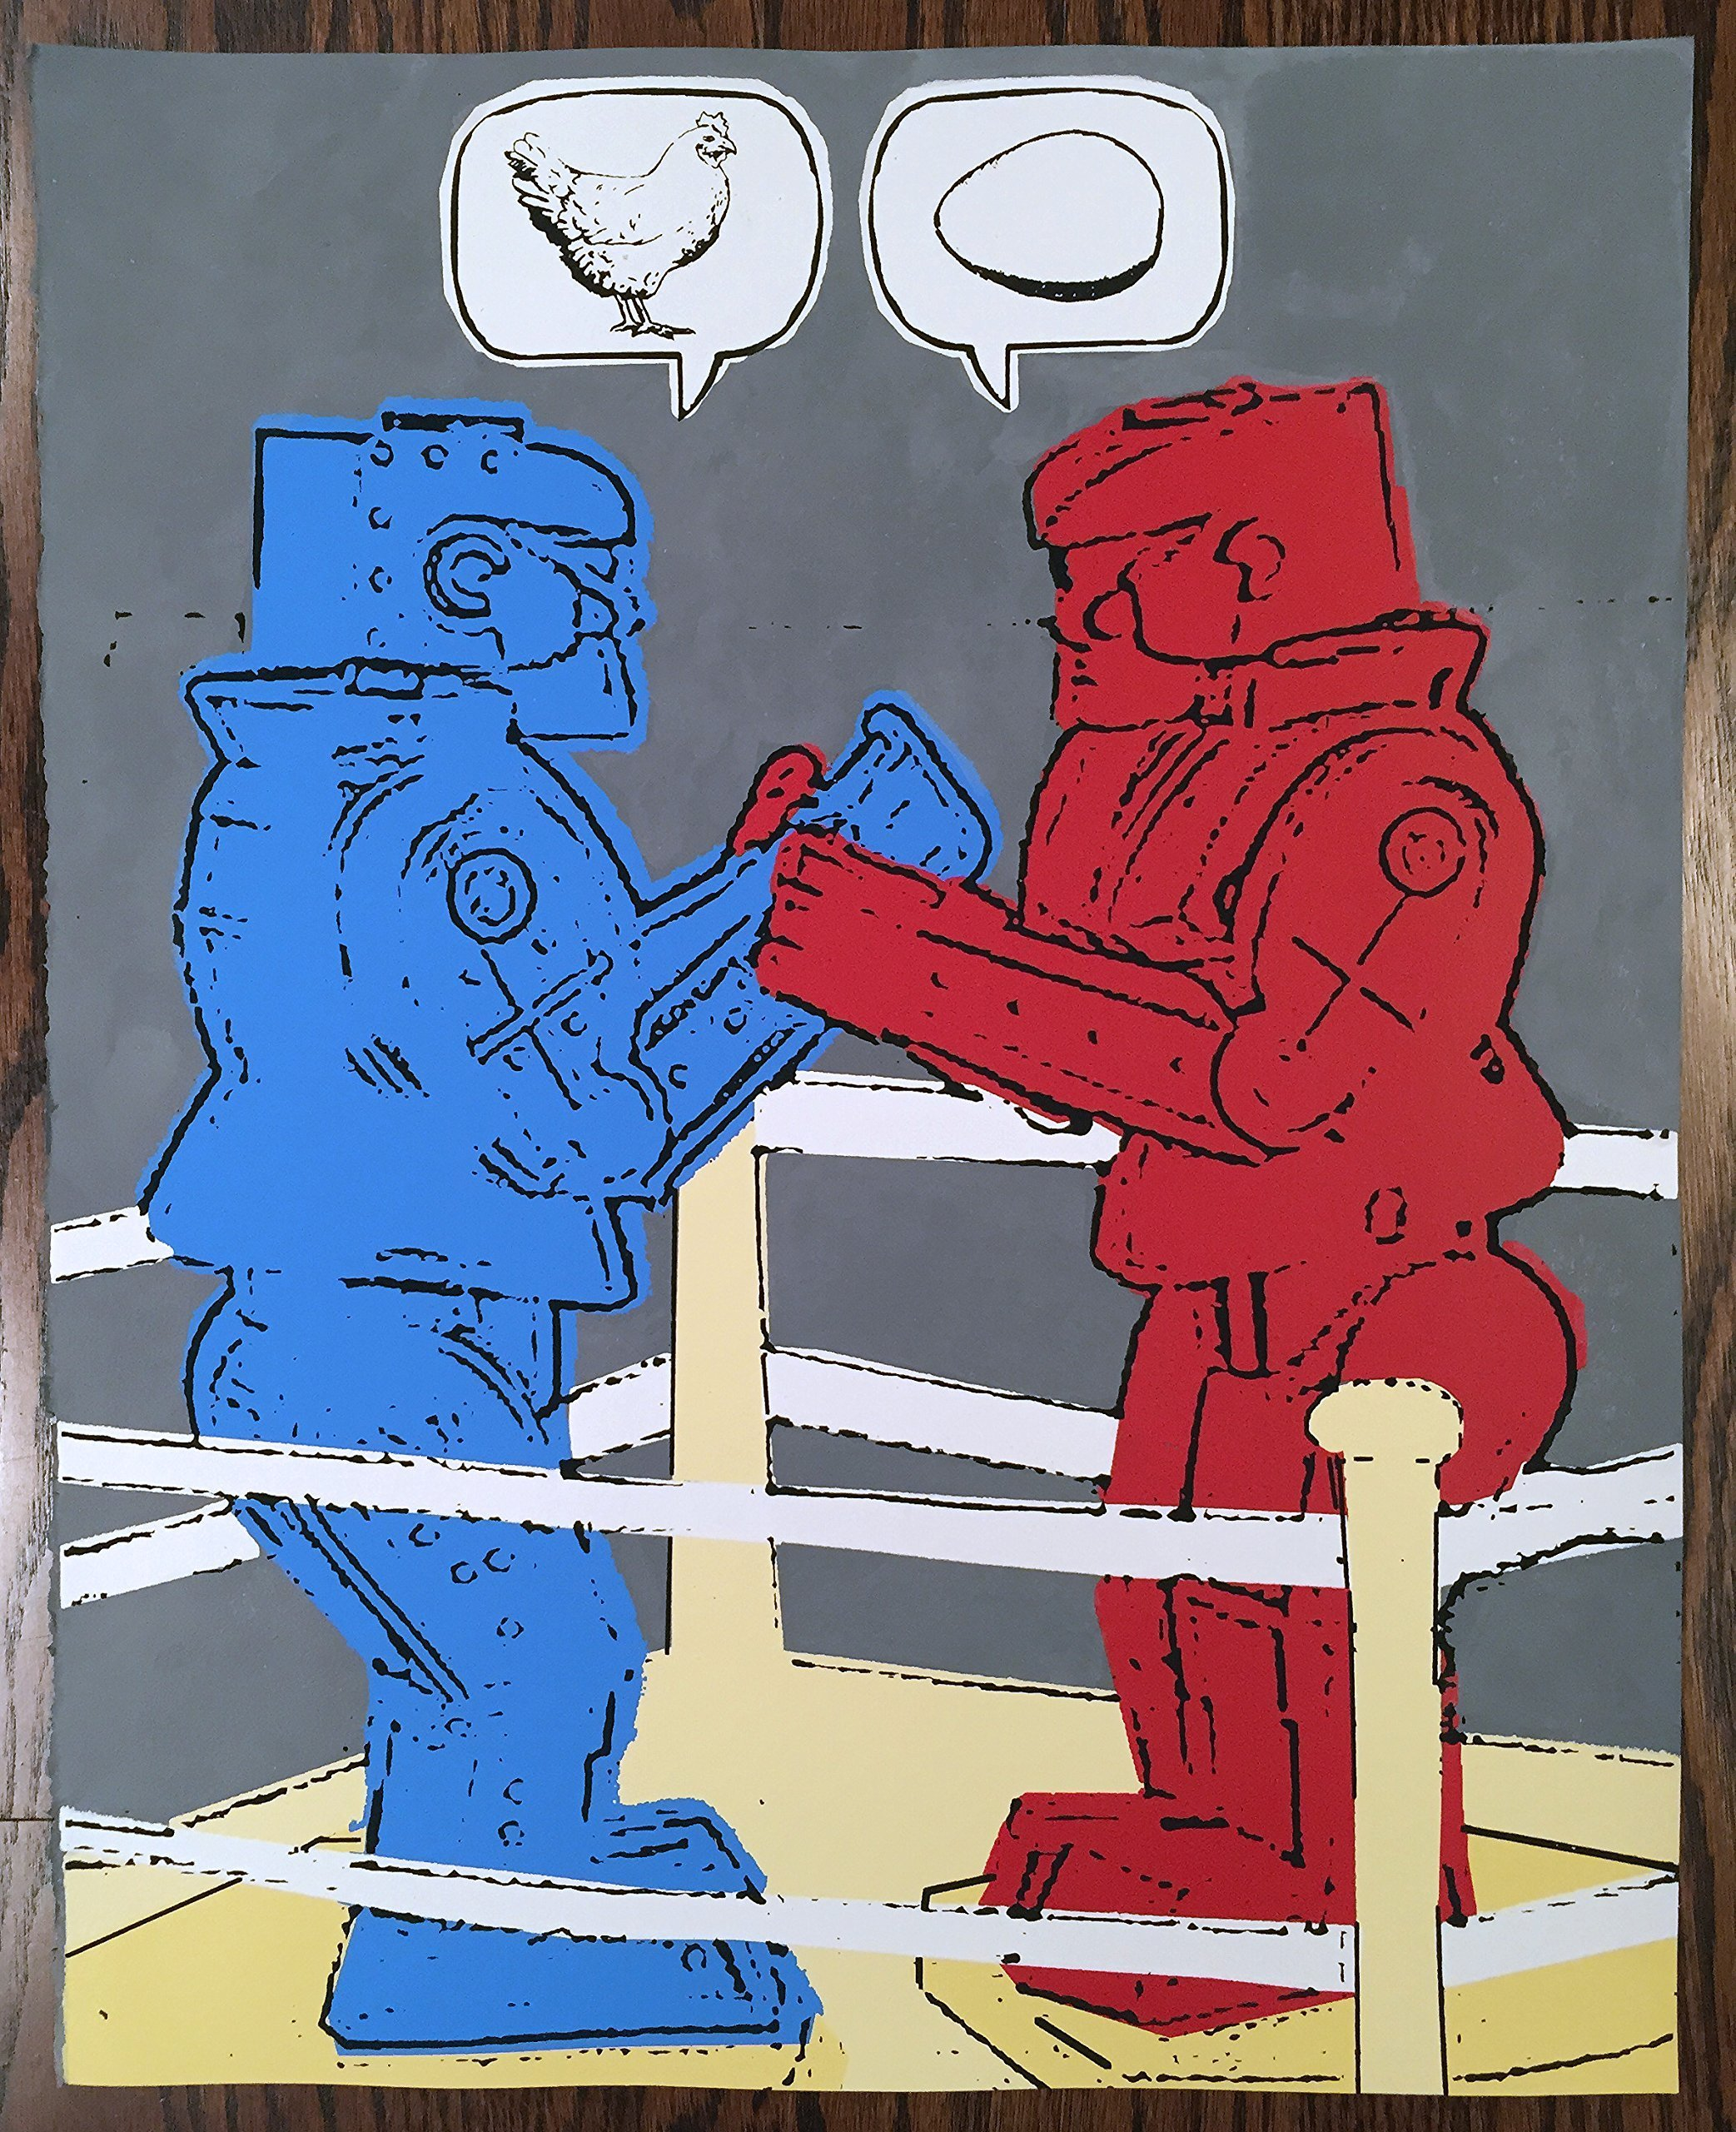 16'' x 20'' - Which Came First? - Limited Edition Hand Silk Screened Art Painting Chicken Egg & Robots! by Johnston America